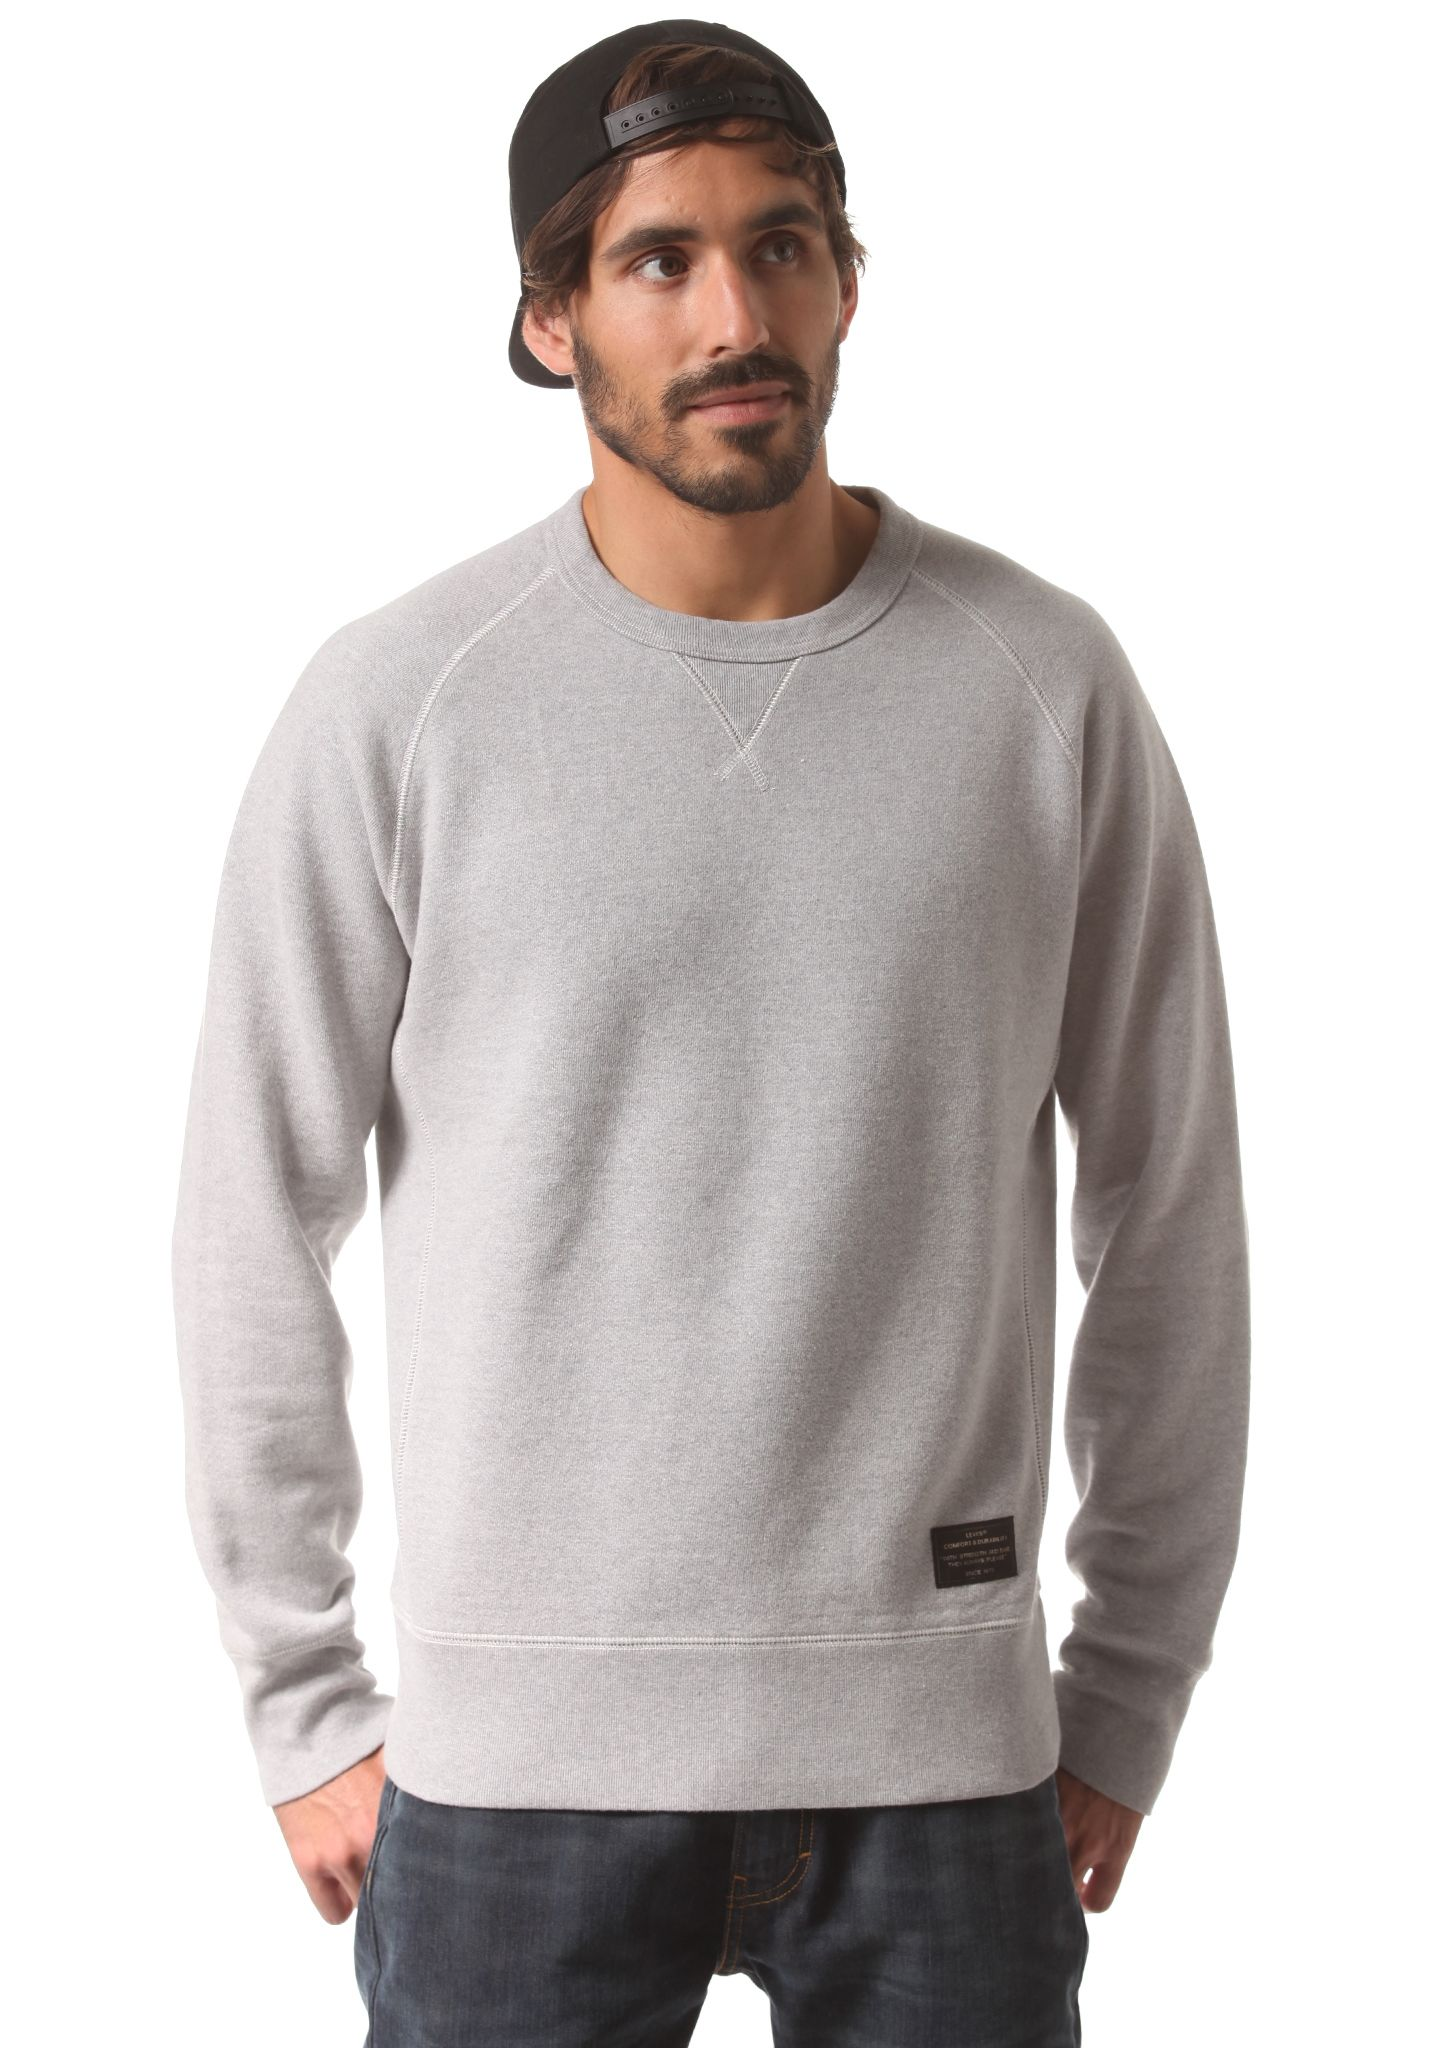 Levi's Skate Crewneck Fleece - Sweatshirt for Men - Grey - Planet ...